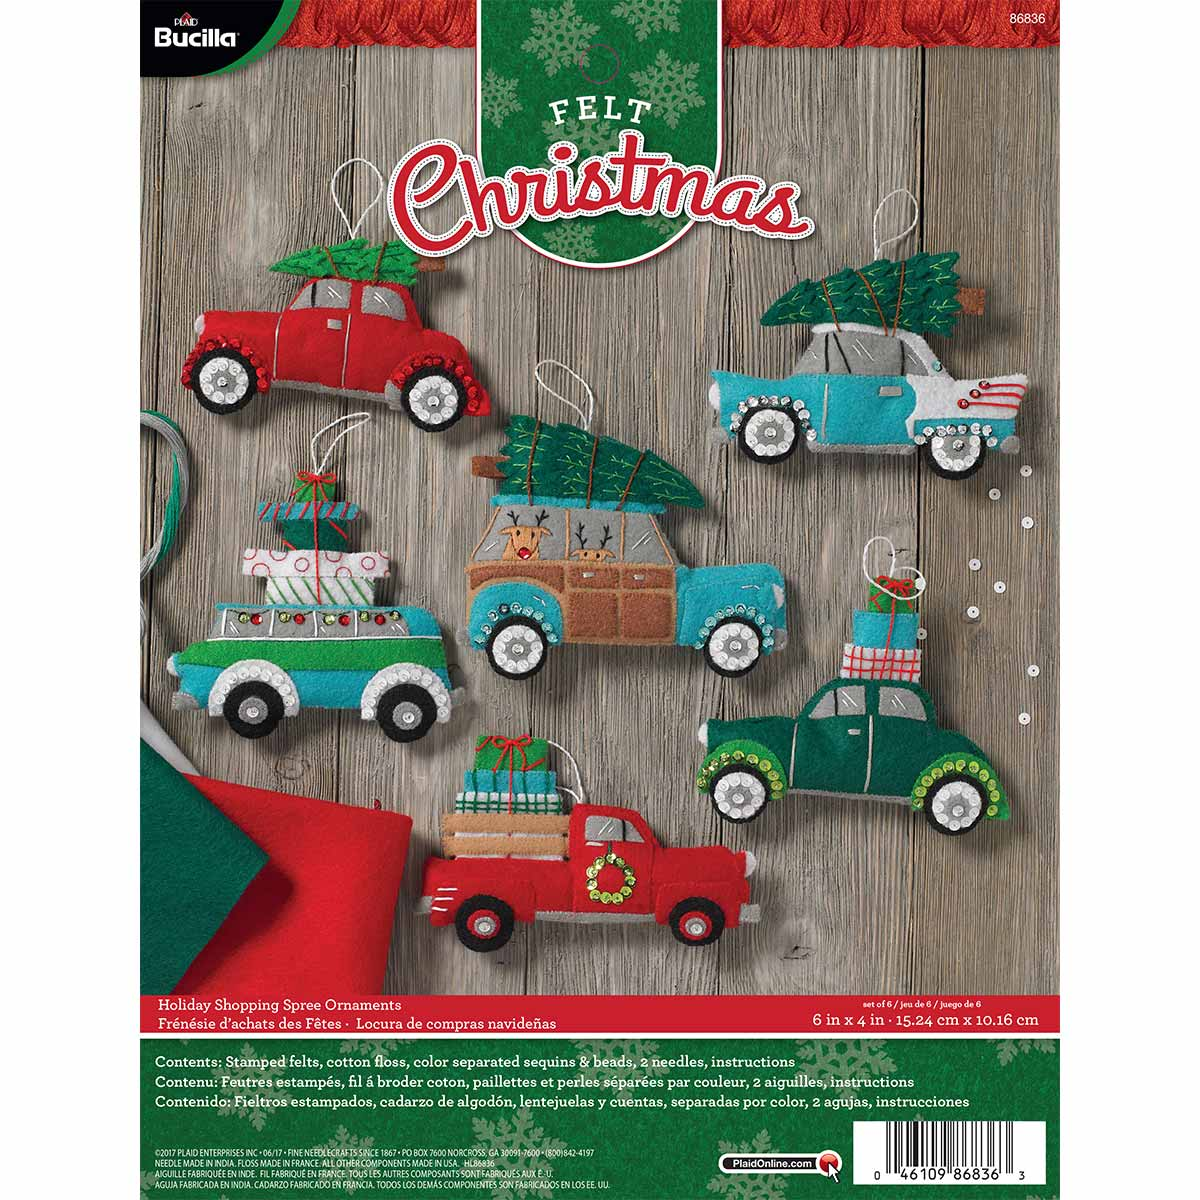 Bucilla ® Seasonal - Felt - Ornament Kits - Holiday Shopping Spree